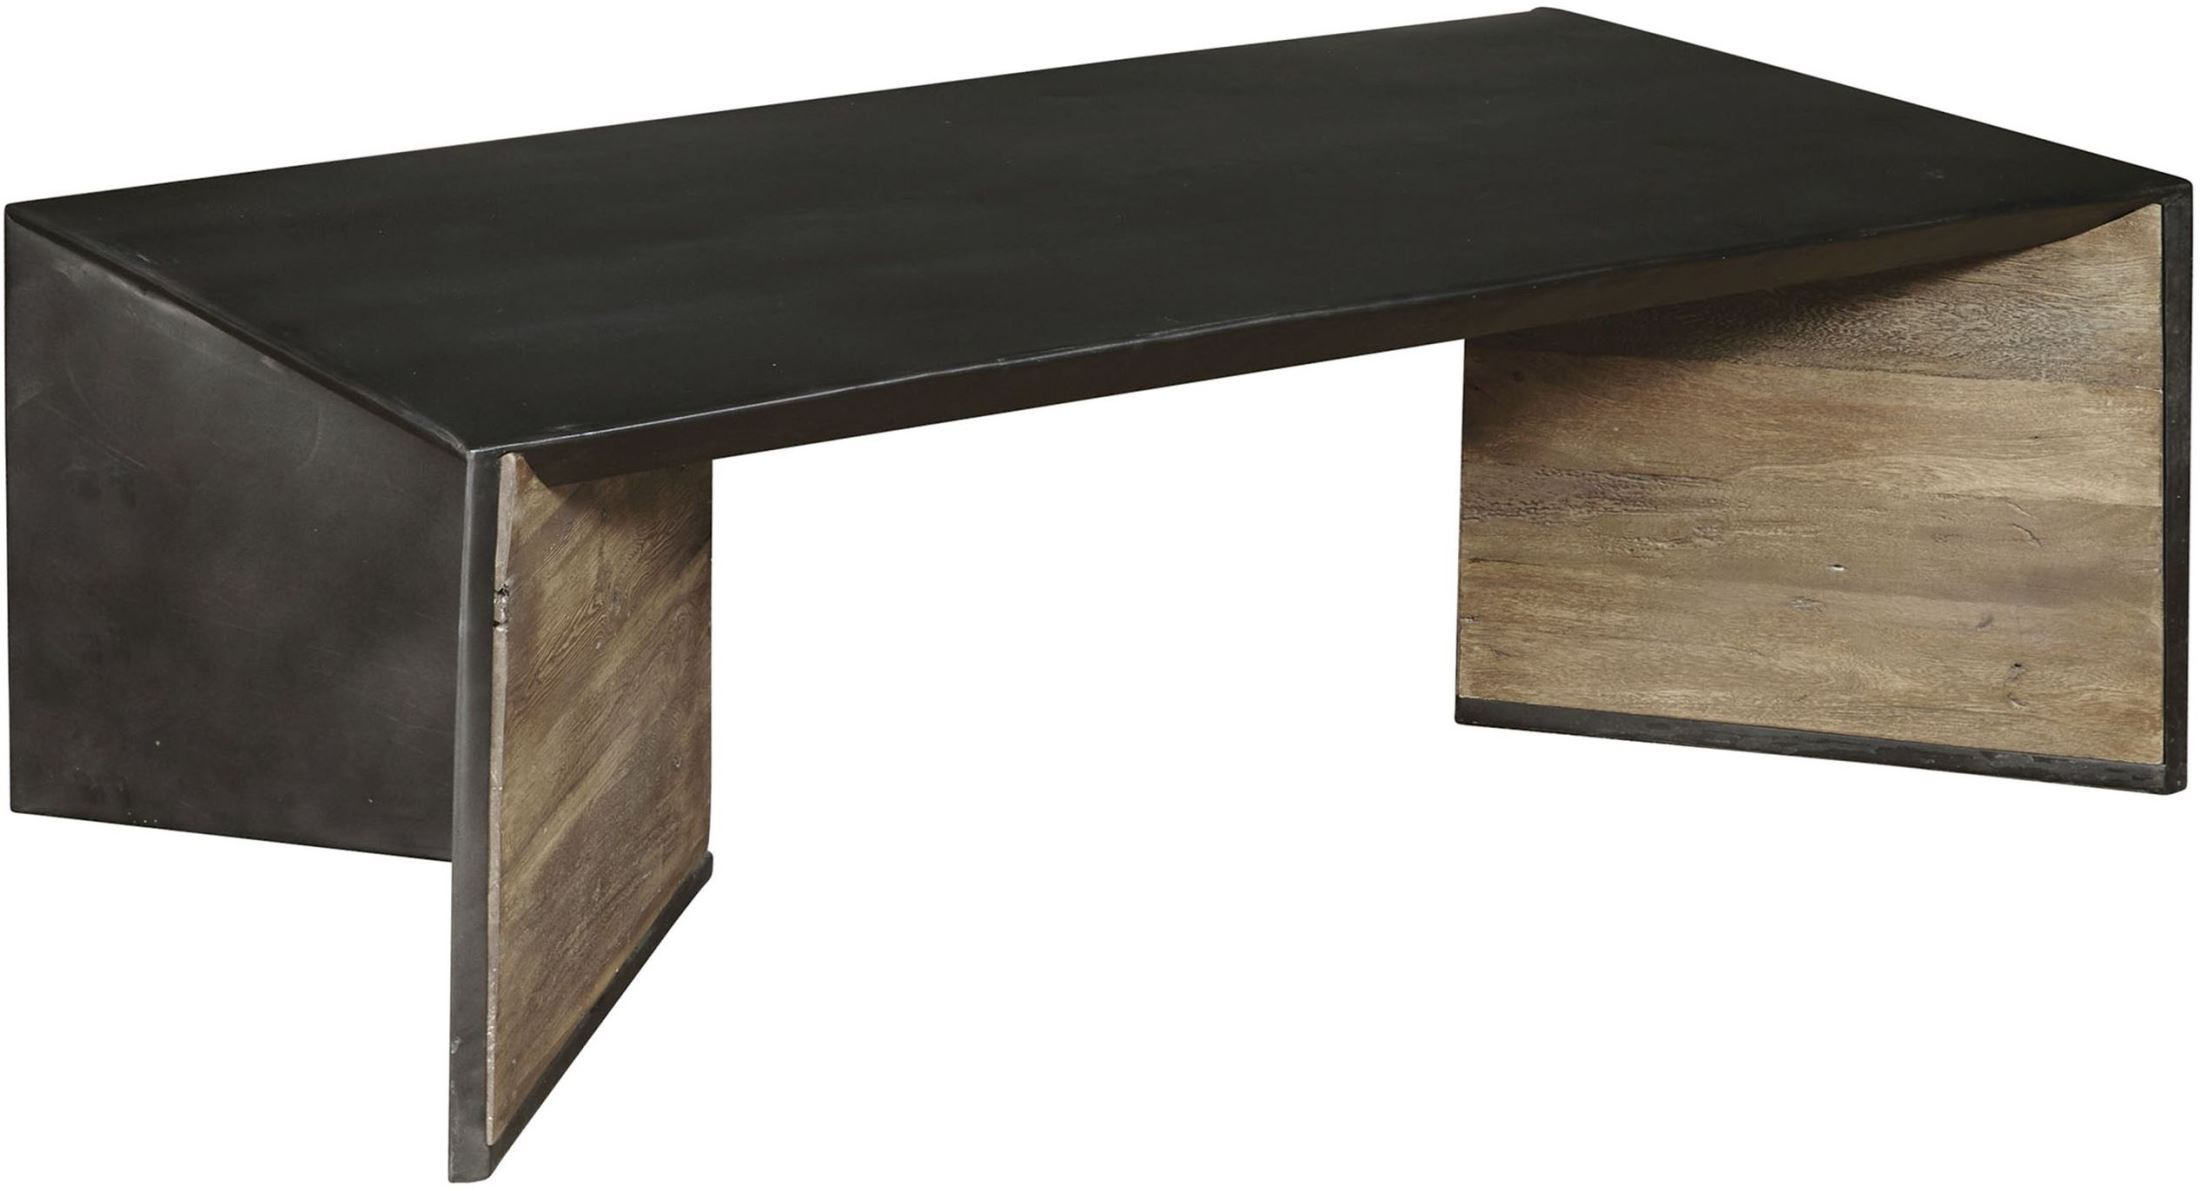 Fenton Black And Brown Cocktail Table From Pulaski Coleman Furniture